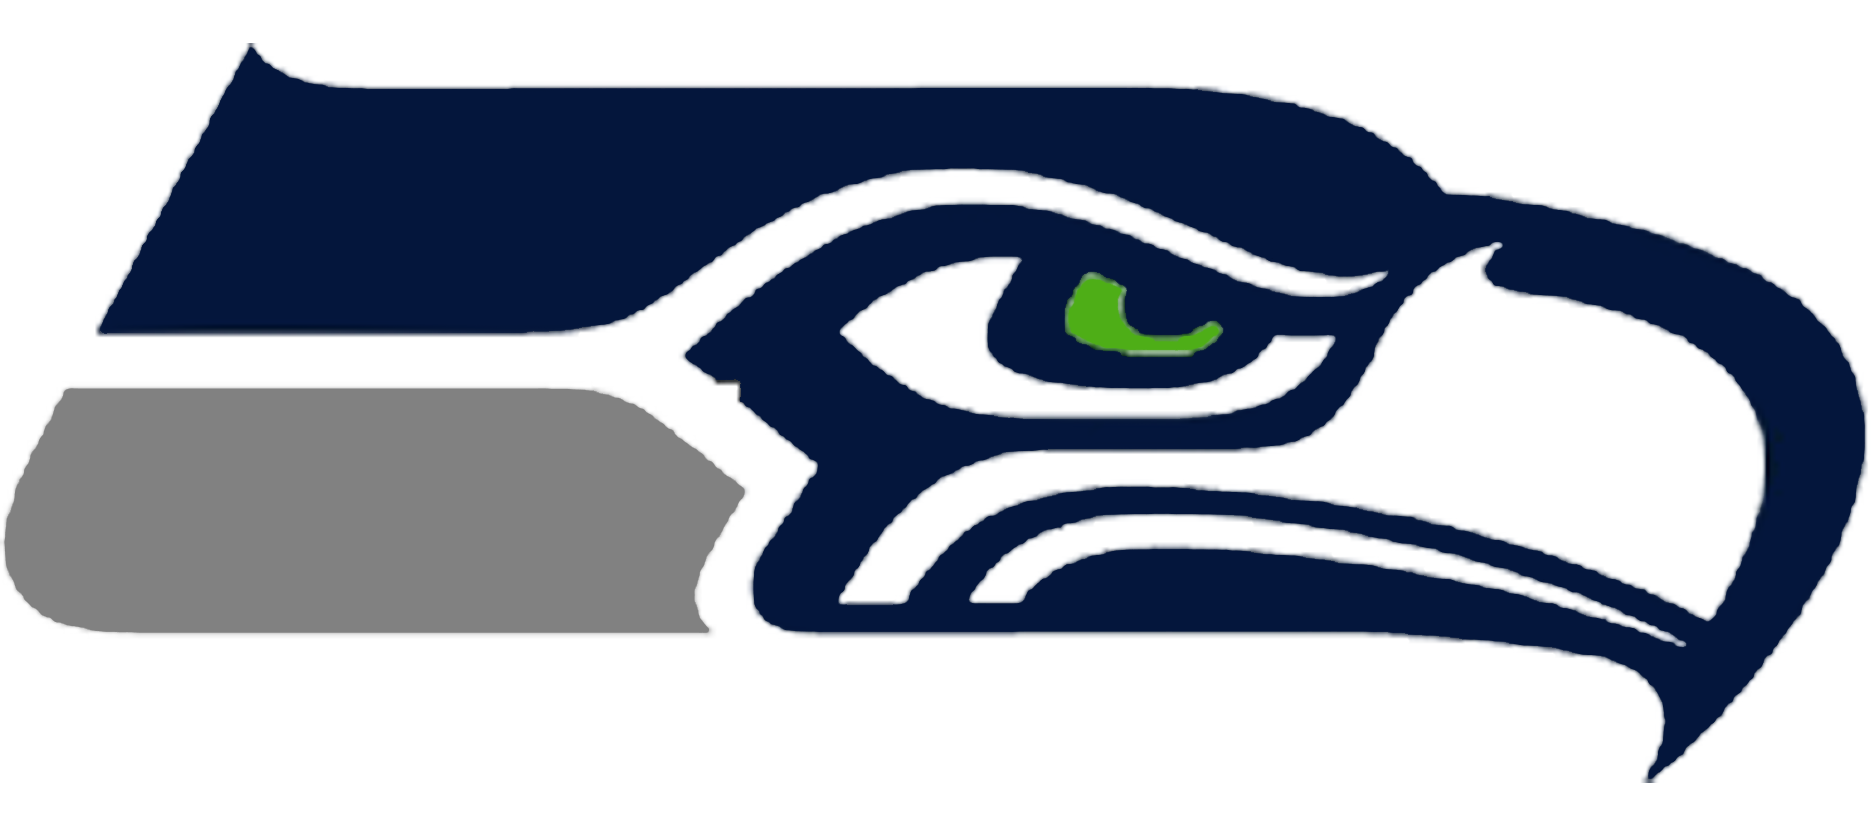 American football game clipart png library Seahawks Logo Clipart at GetDrawings.com | Free for personal use ... png library